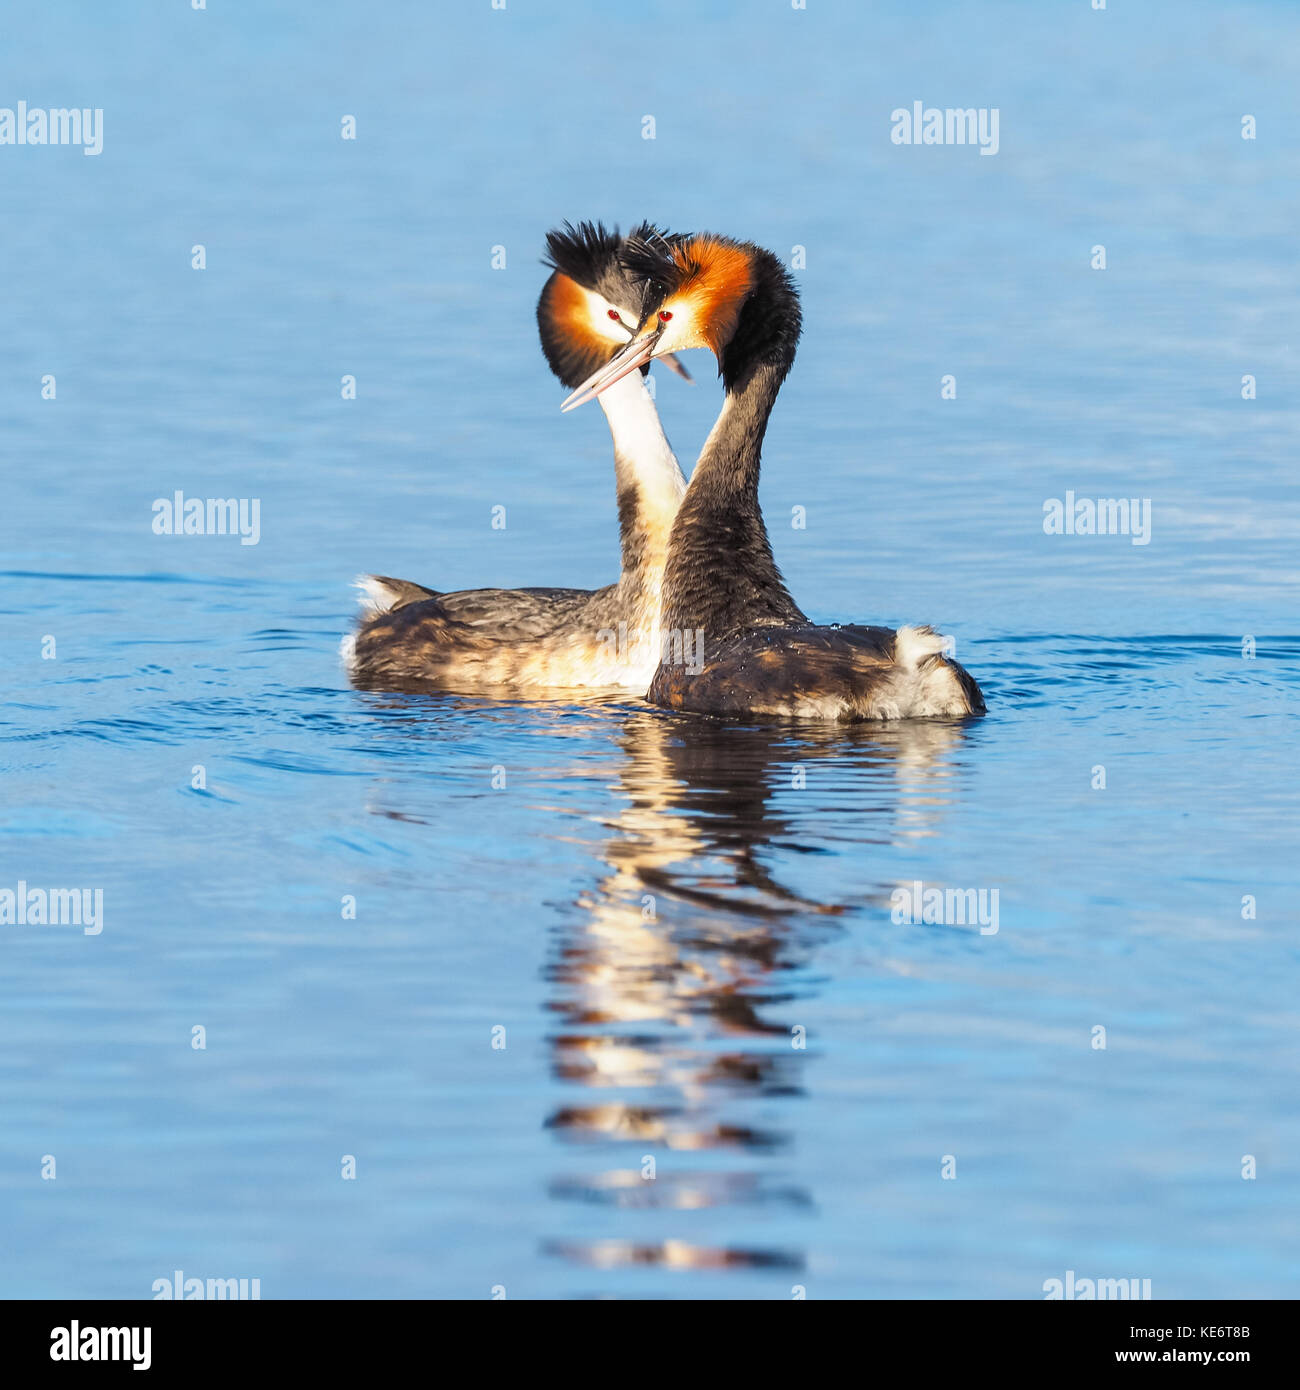 A courting pair of Great Crested Grebes (Podiceps cristatus) - a member of the grebe family of water birds found - Stock Image